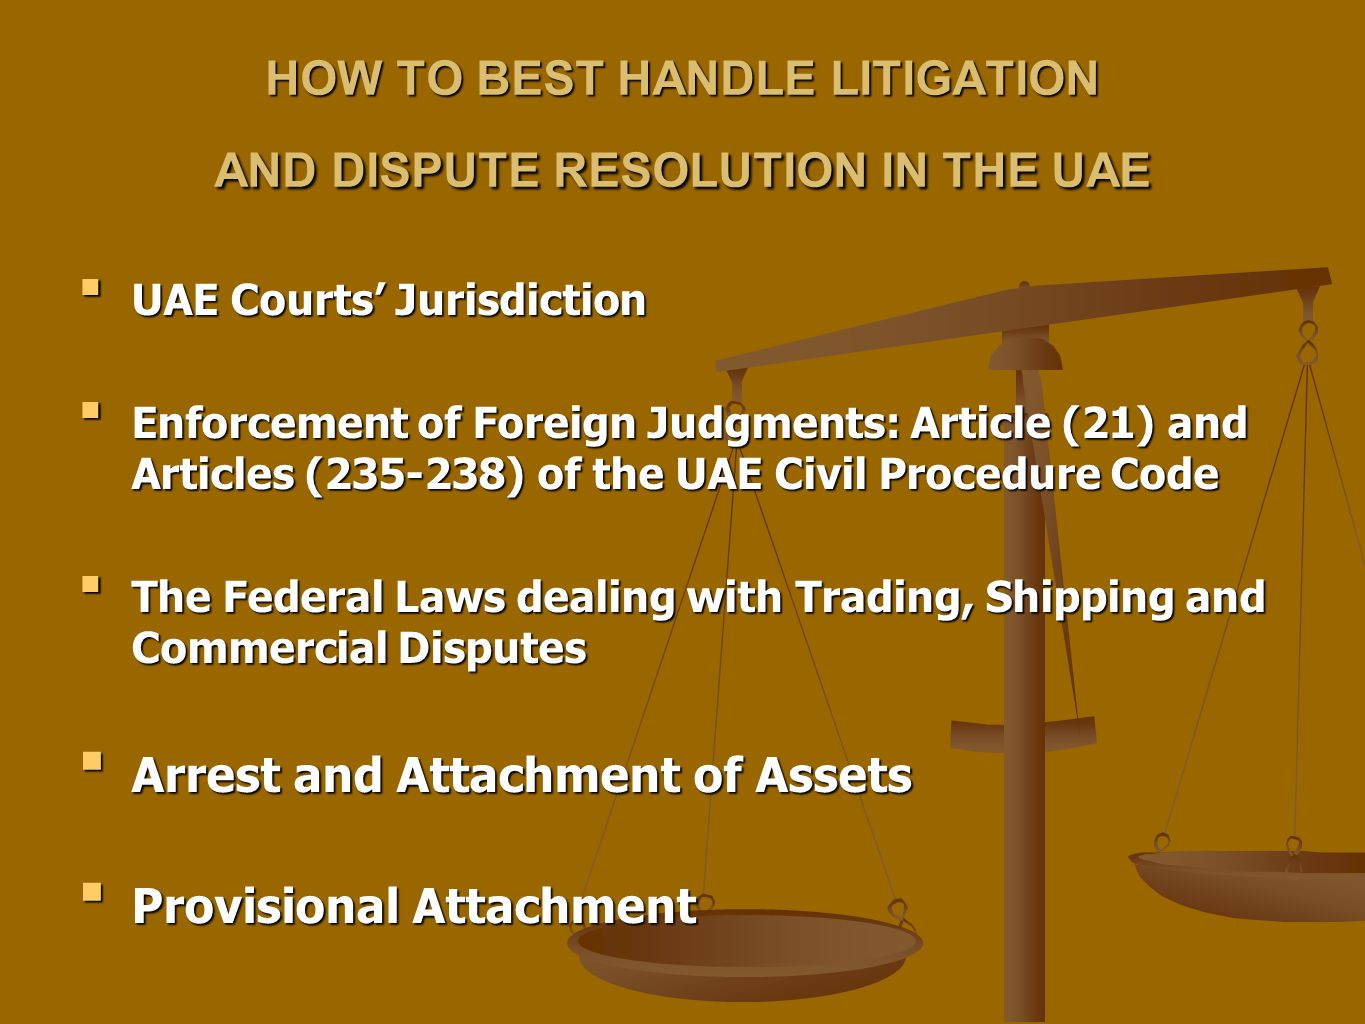 HOW TO BEST HANDLE LITIGATION AND DISPUTE RESOLUTION IN THE UAE UAE Courts' JurisdictionUAE Courts' Jurisdiction Enforcement of Foreign Judgments: Article (21) and Articles (235-238) of the UAE Civil Procedure CodeEnforcement of Foreign Judgments: Article (21) and Articles (235-238) of the UAE Civil Procedure Code The Federal Laws dealing with Trading, Shipping and Commercial DisputesThe Federal Laws dealing with Trading, Shipping and Commercial Disputes Arrest and Attachment of AssetsArrest and Attachment of Assets Provisional AttachmentProvisional Attachment